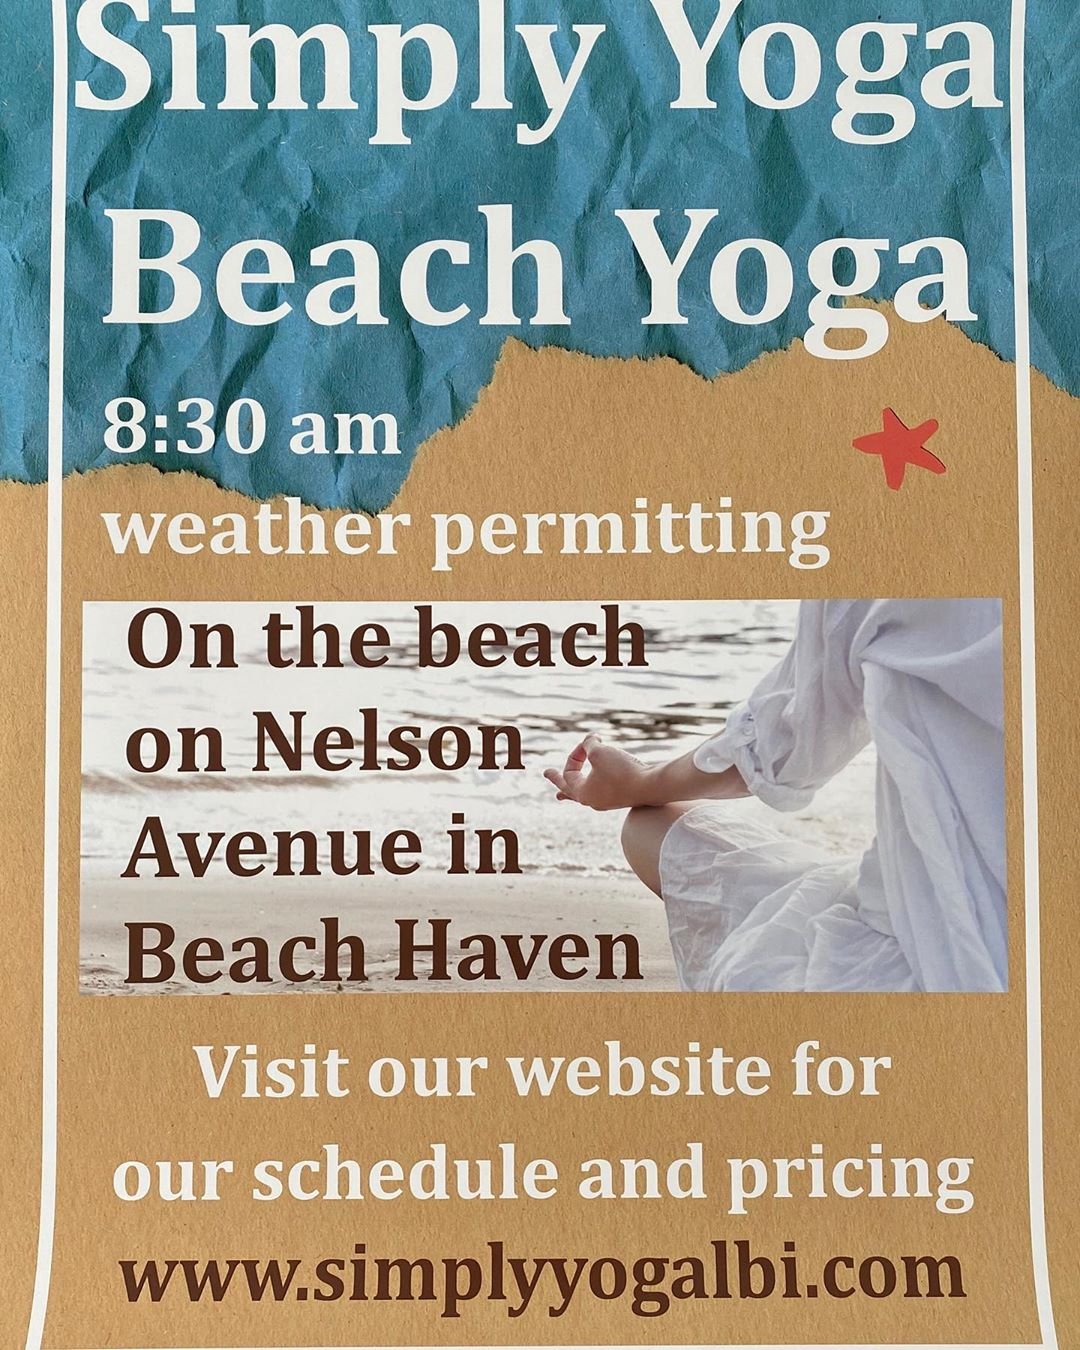 LBI Daily beach yoga on the beach on Nelson Avenue in Beach Haven through Labor Day….